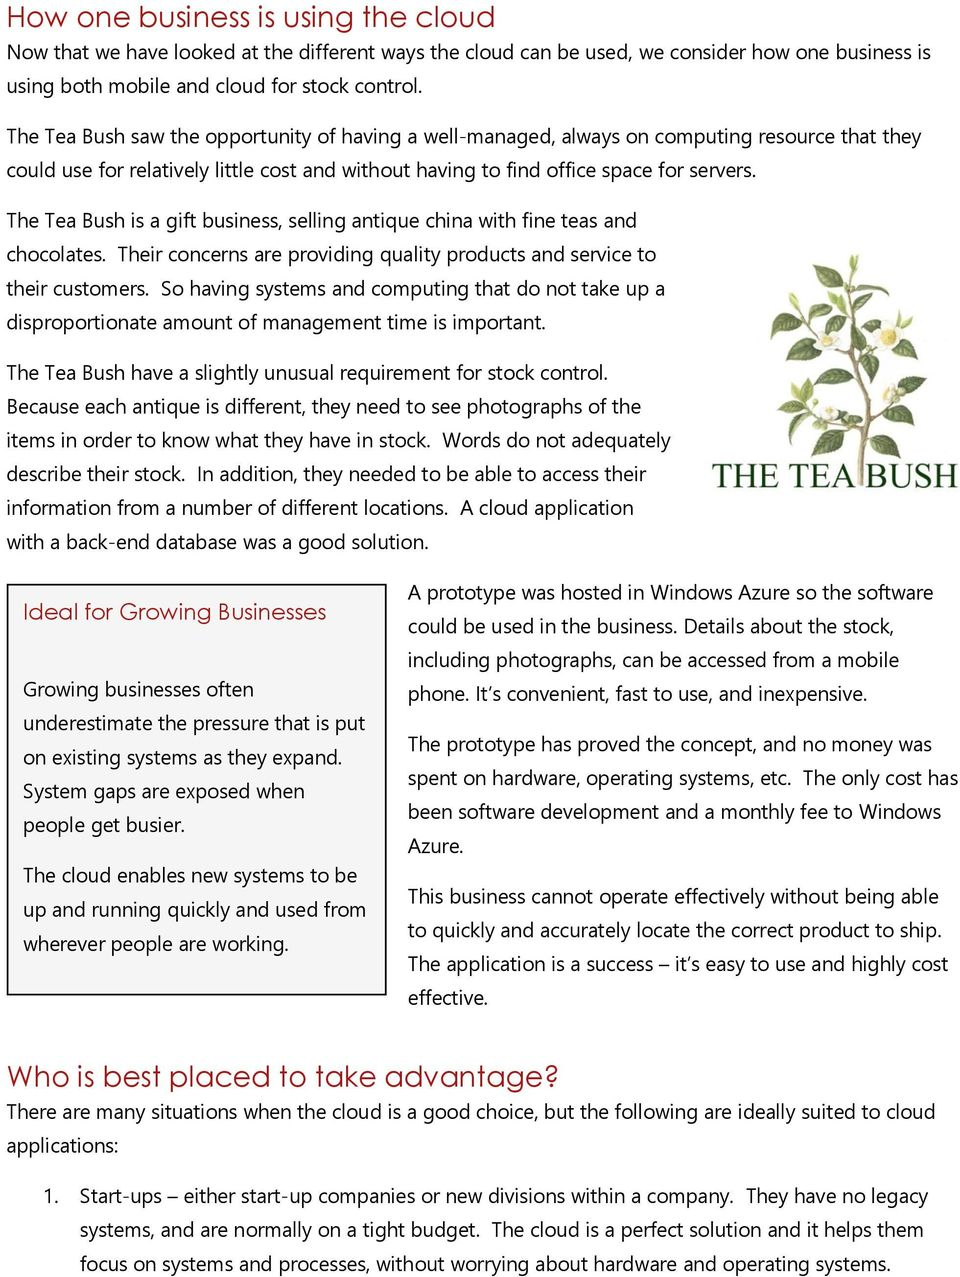 The Tea Bush is a gift business, selling antique china with fine teas and chocolates. Their concerns are providing quality products and service to their customers.